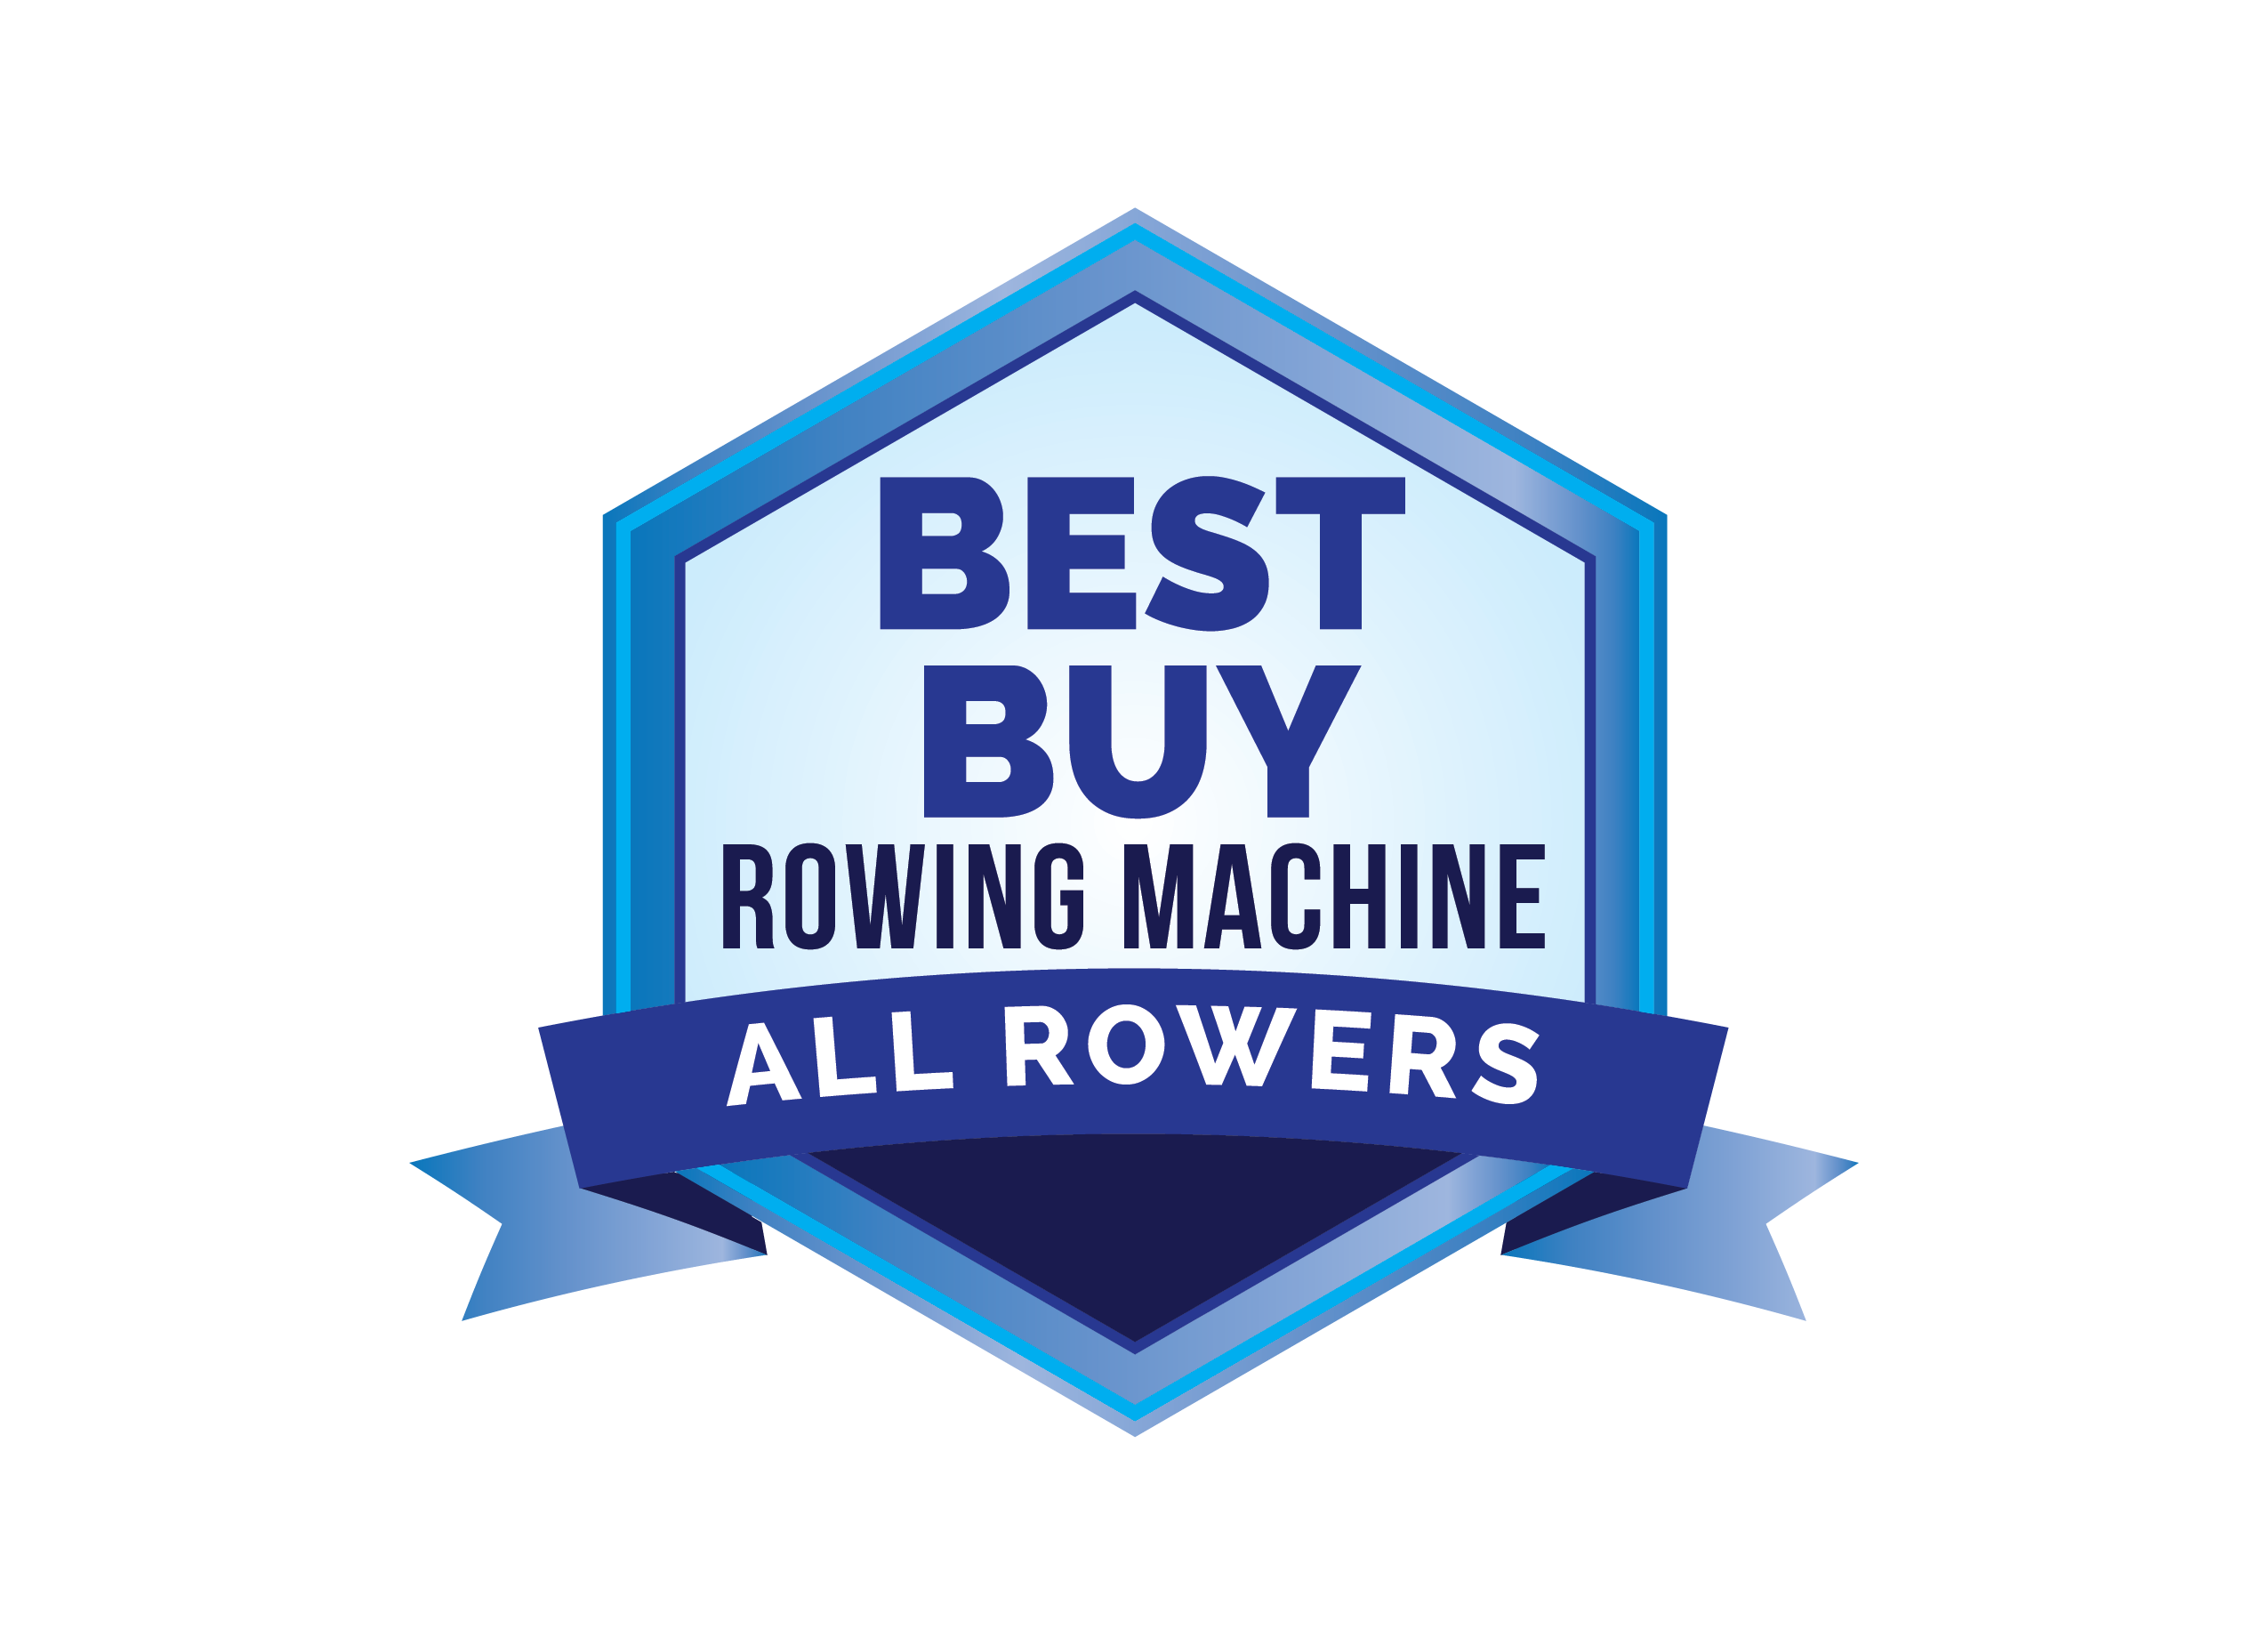 Best Rowing Machines 2018 - All Rowers Badge